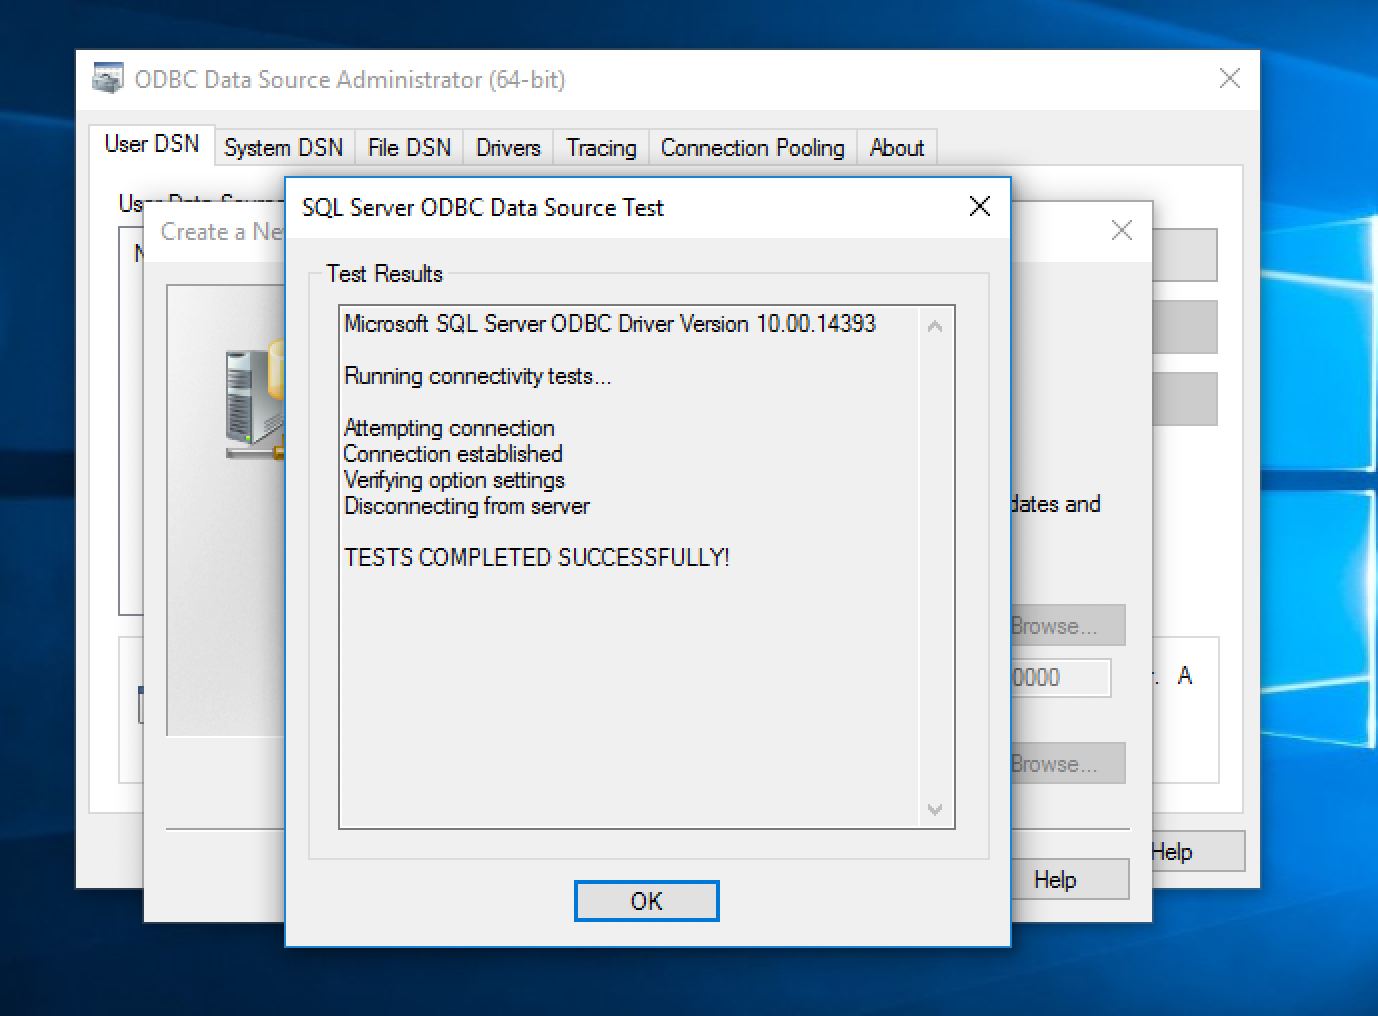 Connecting to MS SQL Server through ODBC from Windows